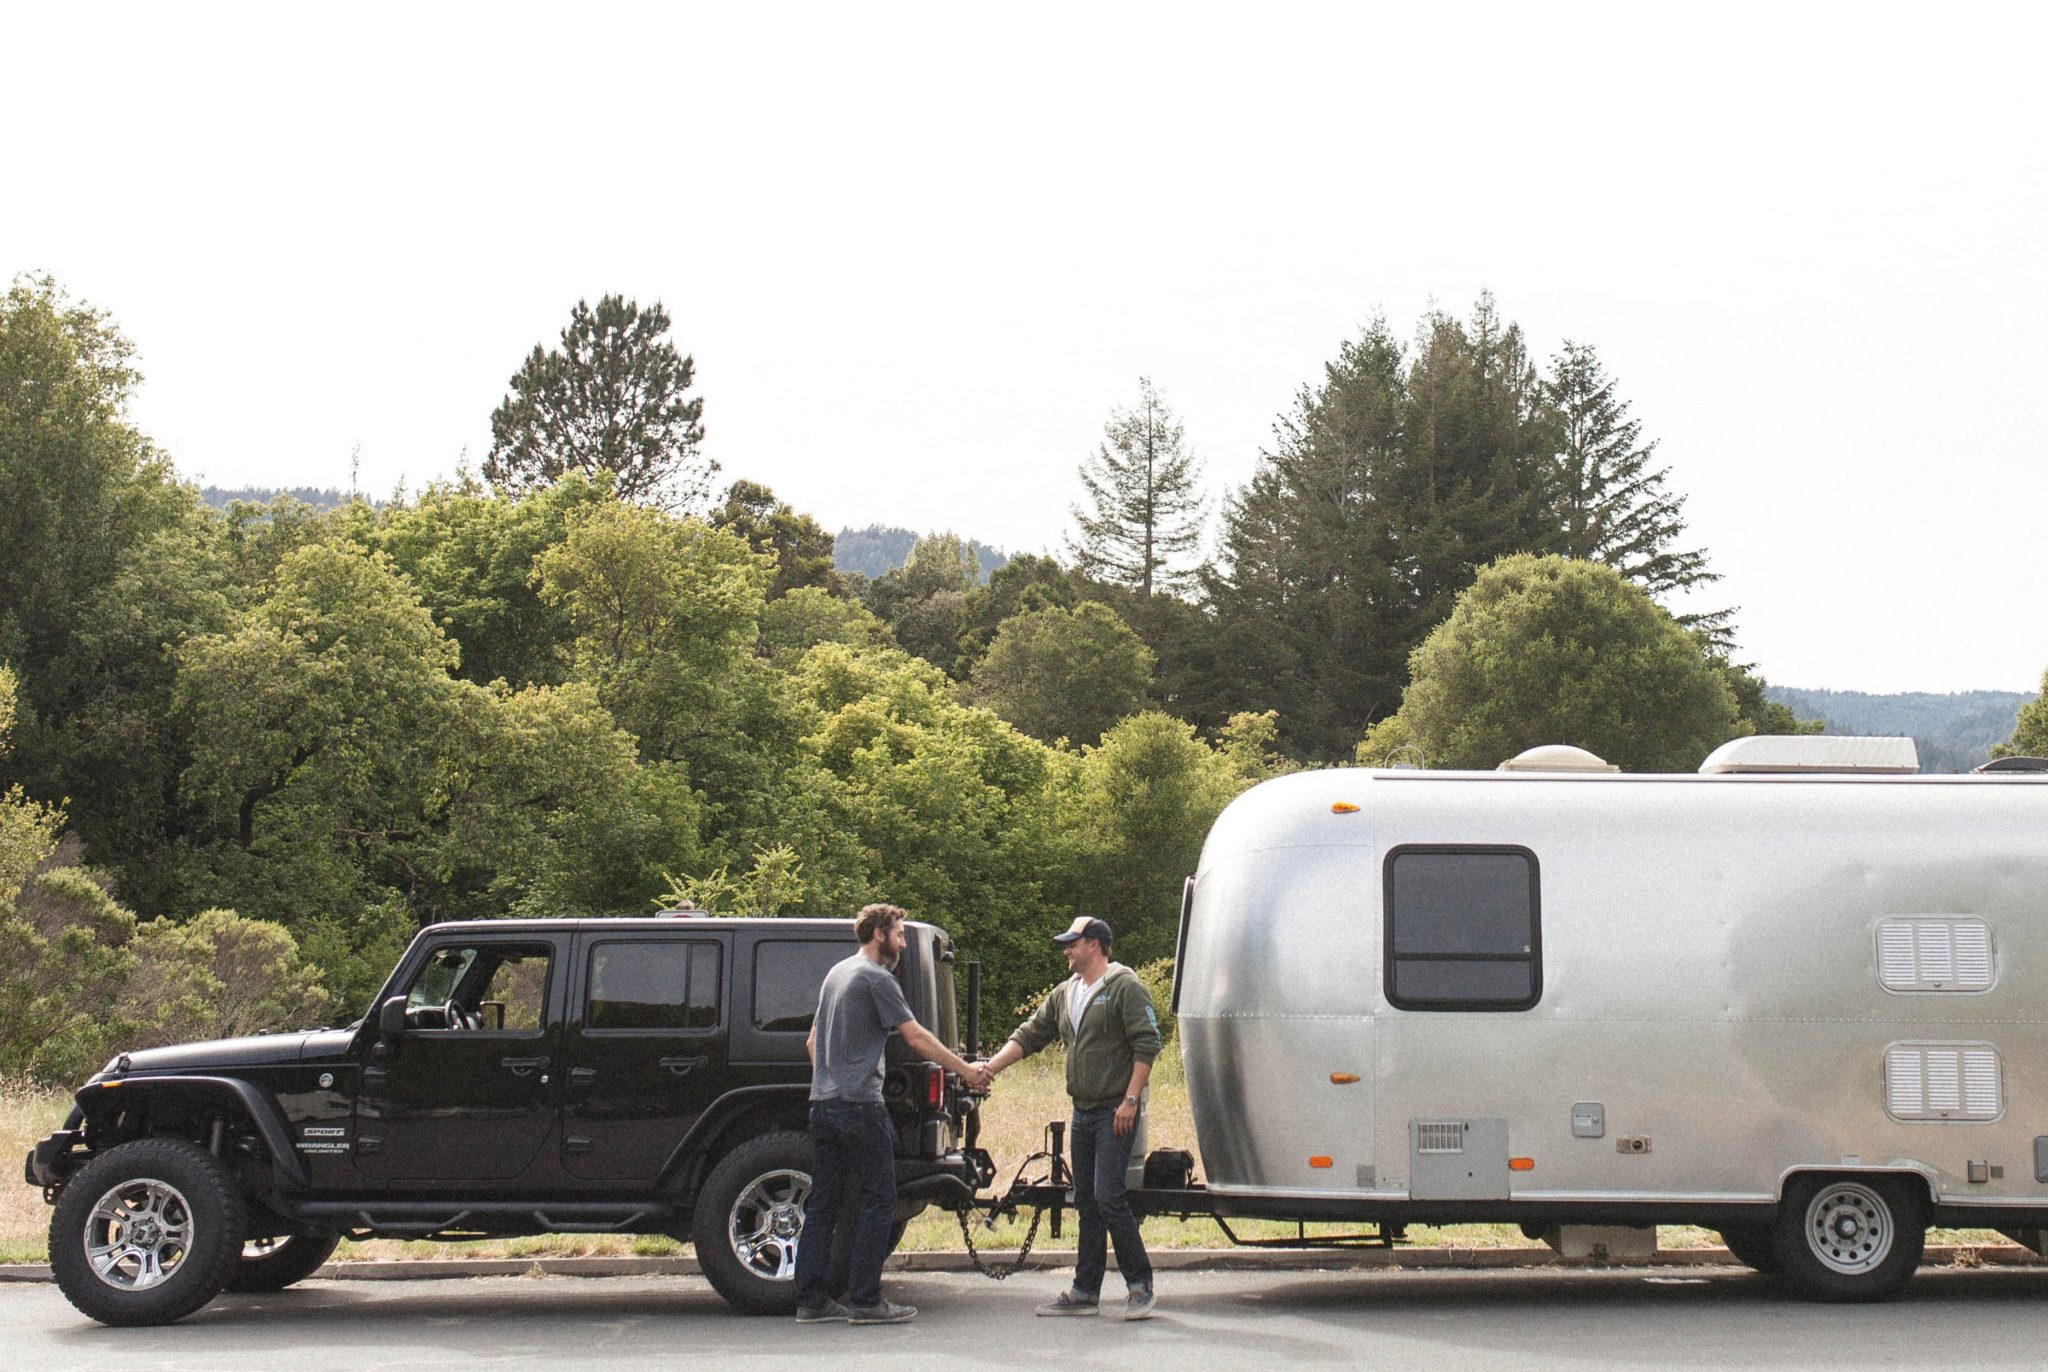 How To: Hitching Up and Towing a Trailer